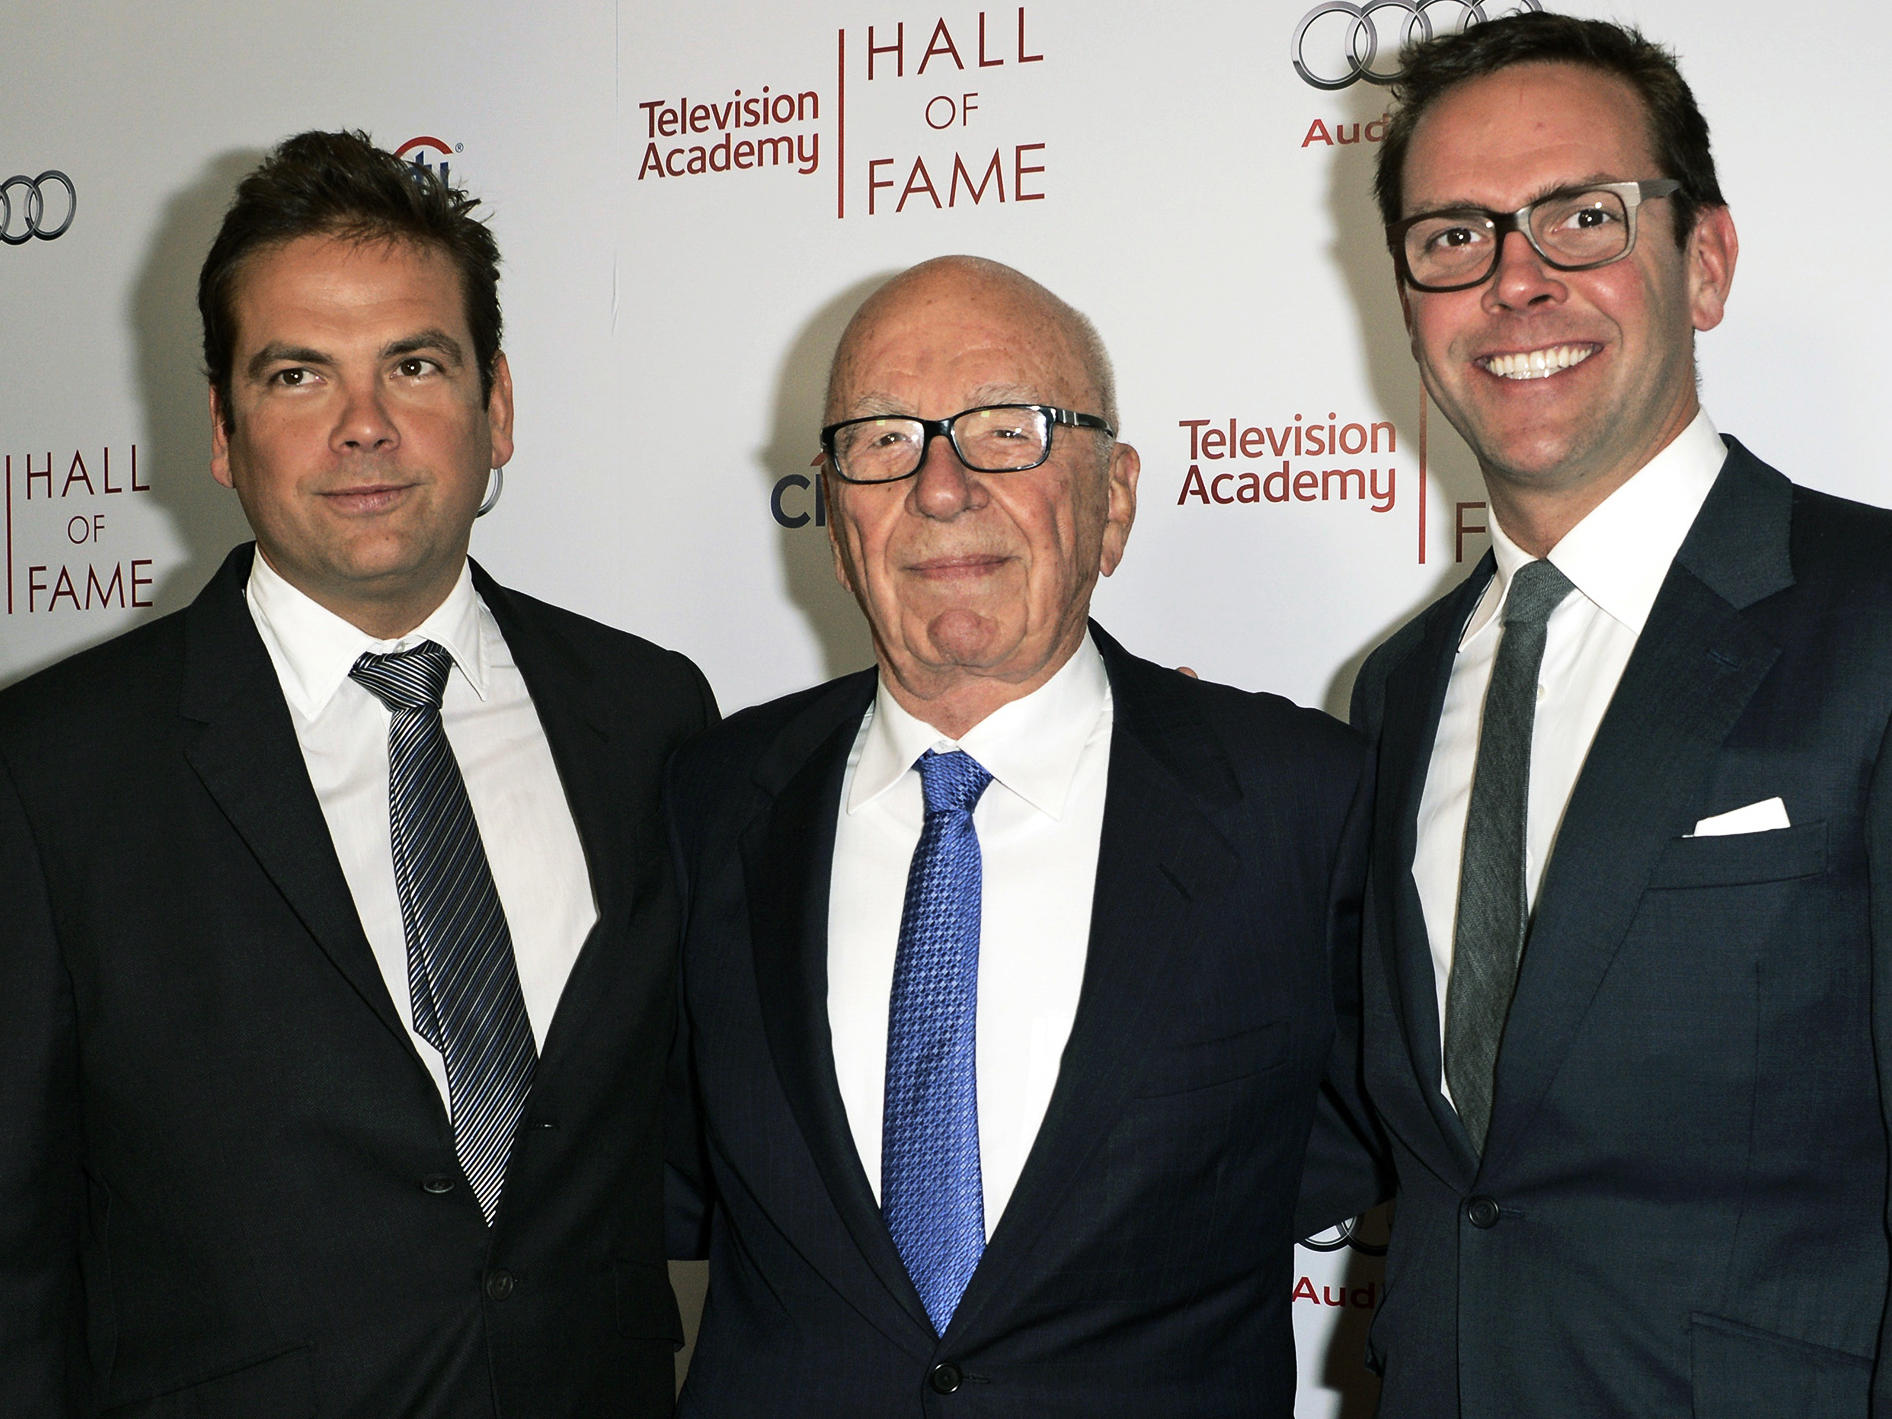 rupert murdoch leadership style Irwin stelzer spent 35 years advising rupert murdoch  unlike many corporate  leaders, murdoch treats regulators with respect and courtesy  sold at fire-sale  prices because murdoch's hands-on management style resulted.